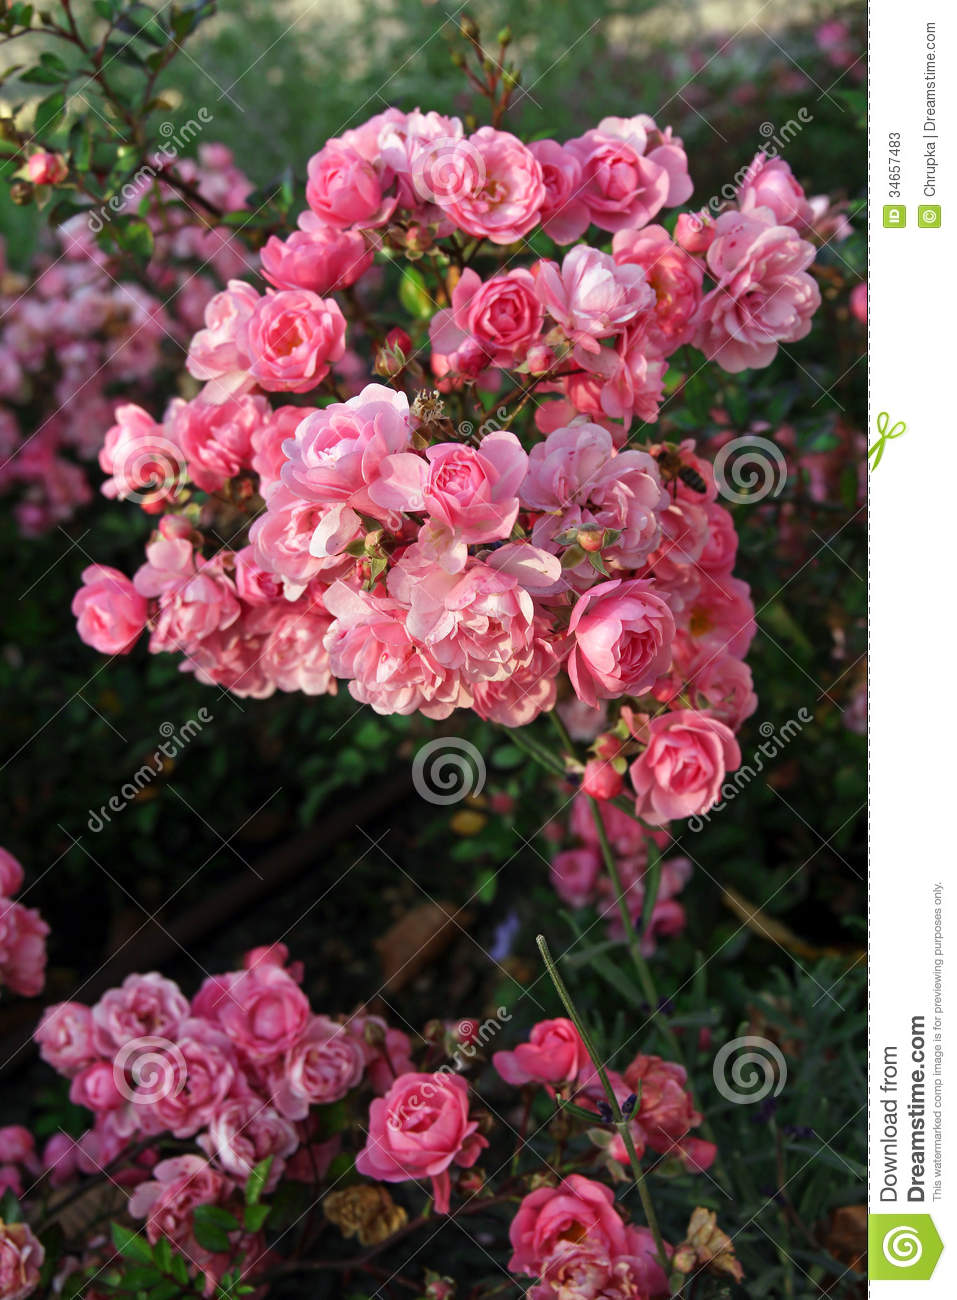 Roses In Garden: Beautiful Pink Roses In Garden Stock Image